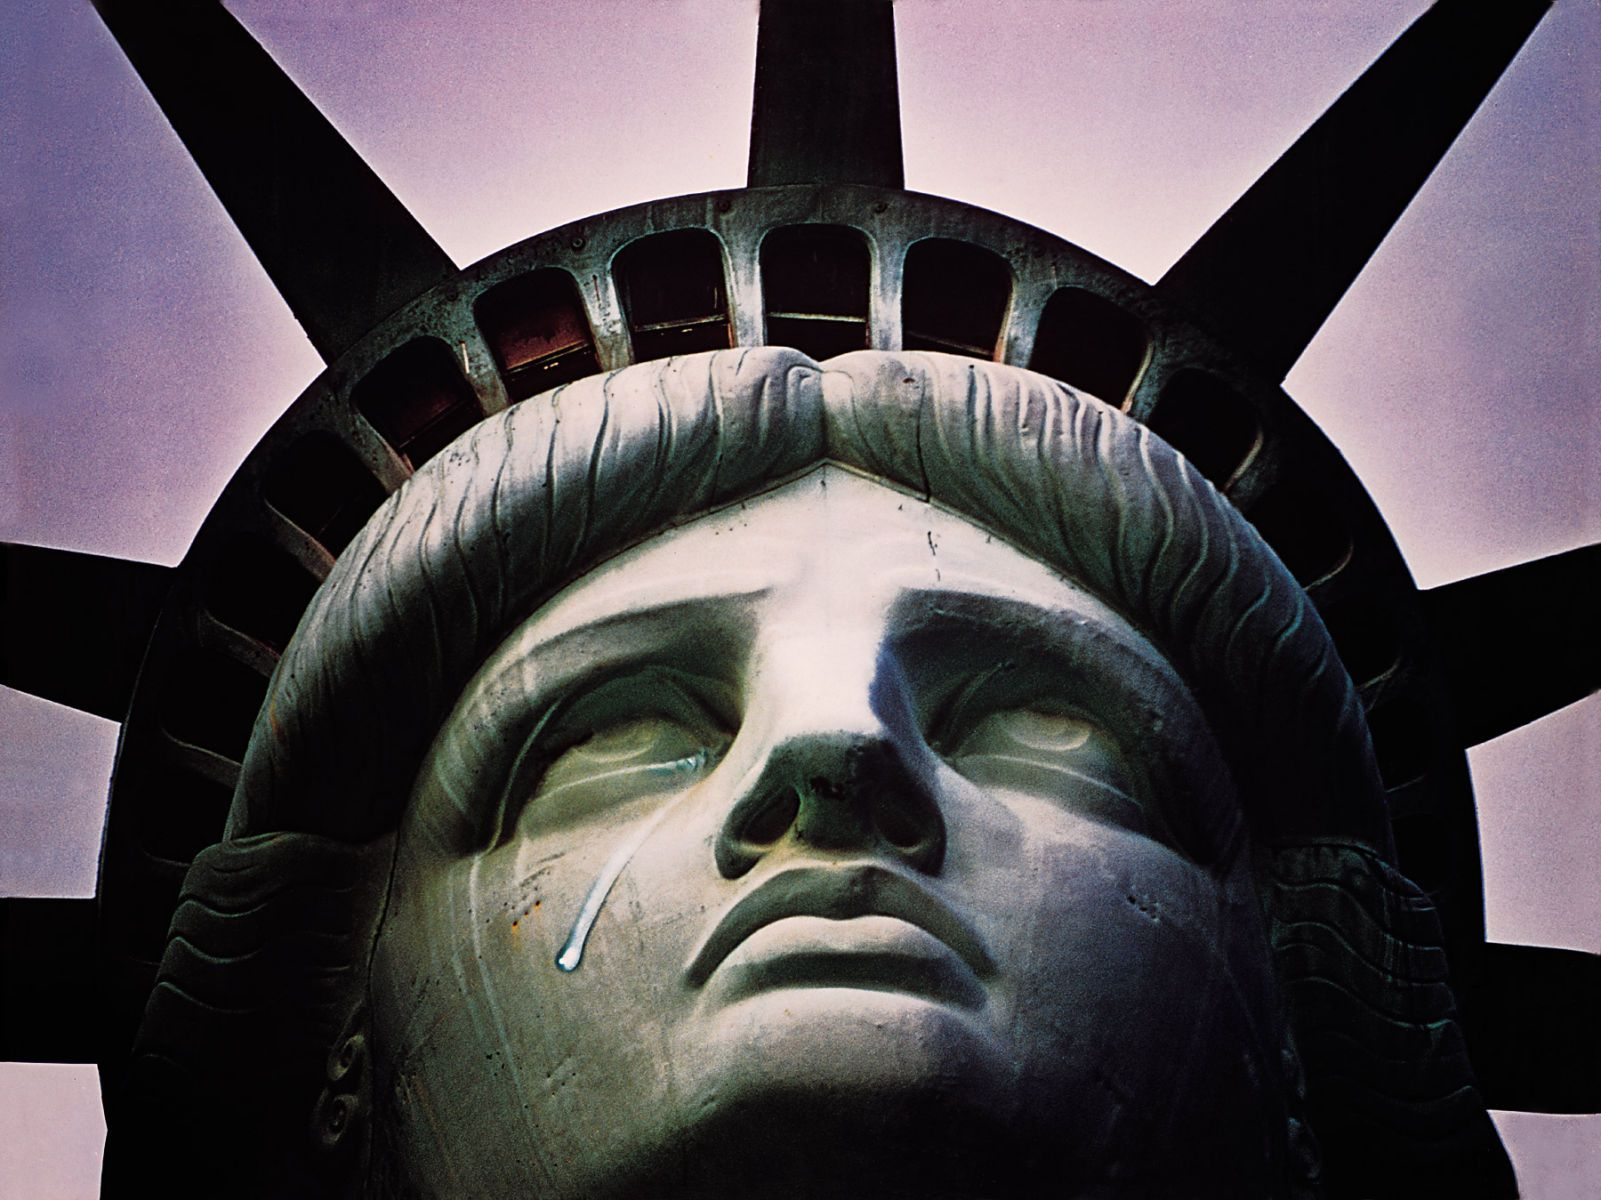 STATUE OF LIBERTY WITH TEAR